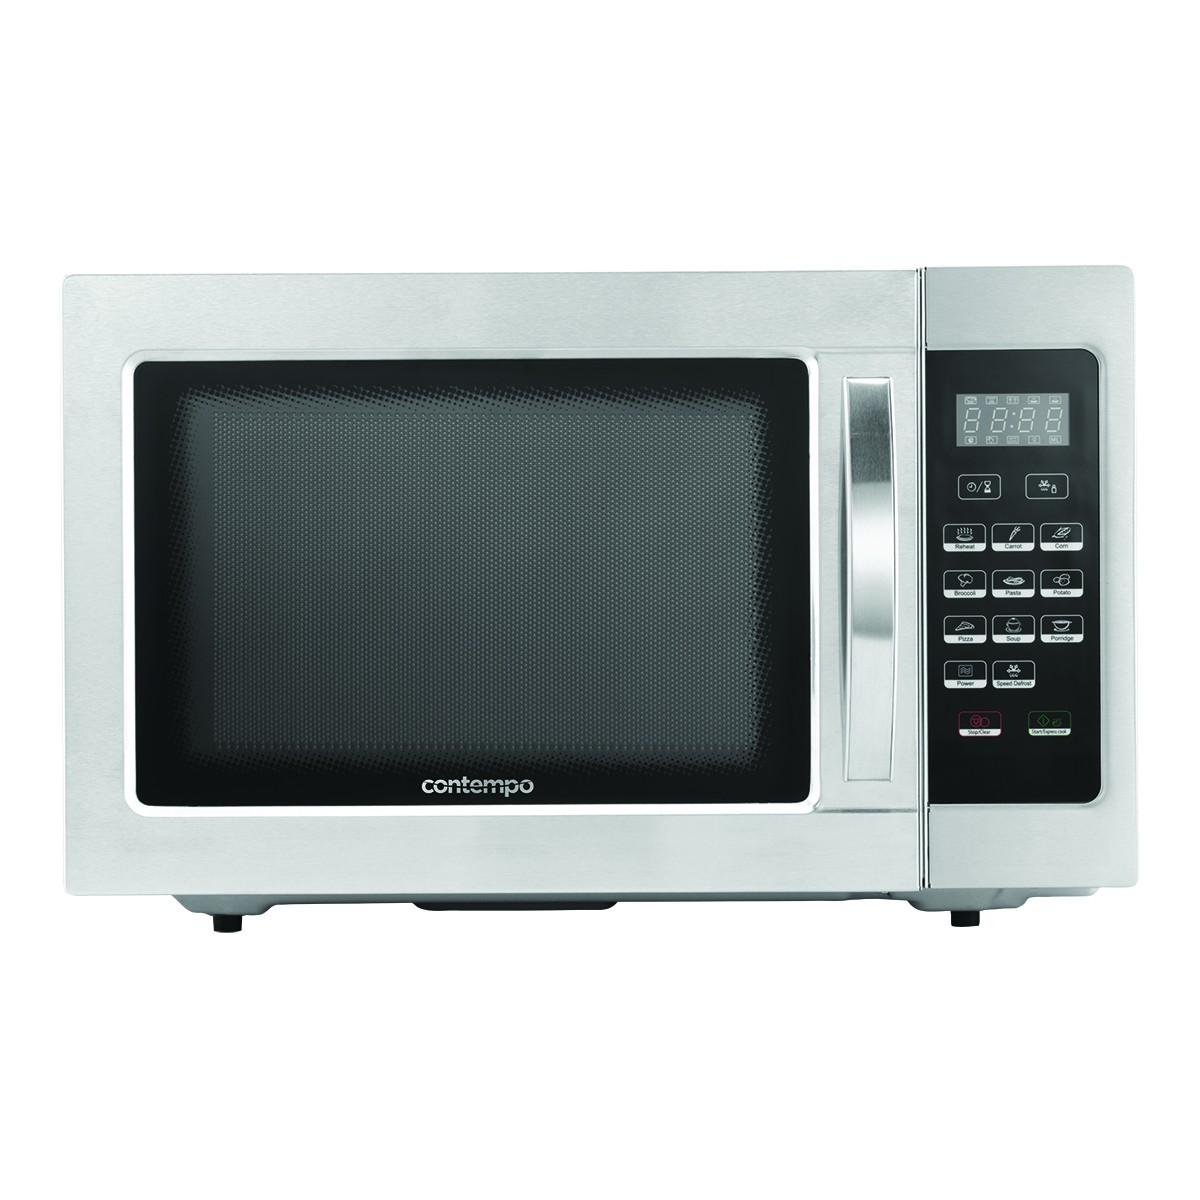 Big W Microwaves Contempo Large Digital Microwave Oven Big W